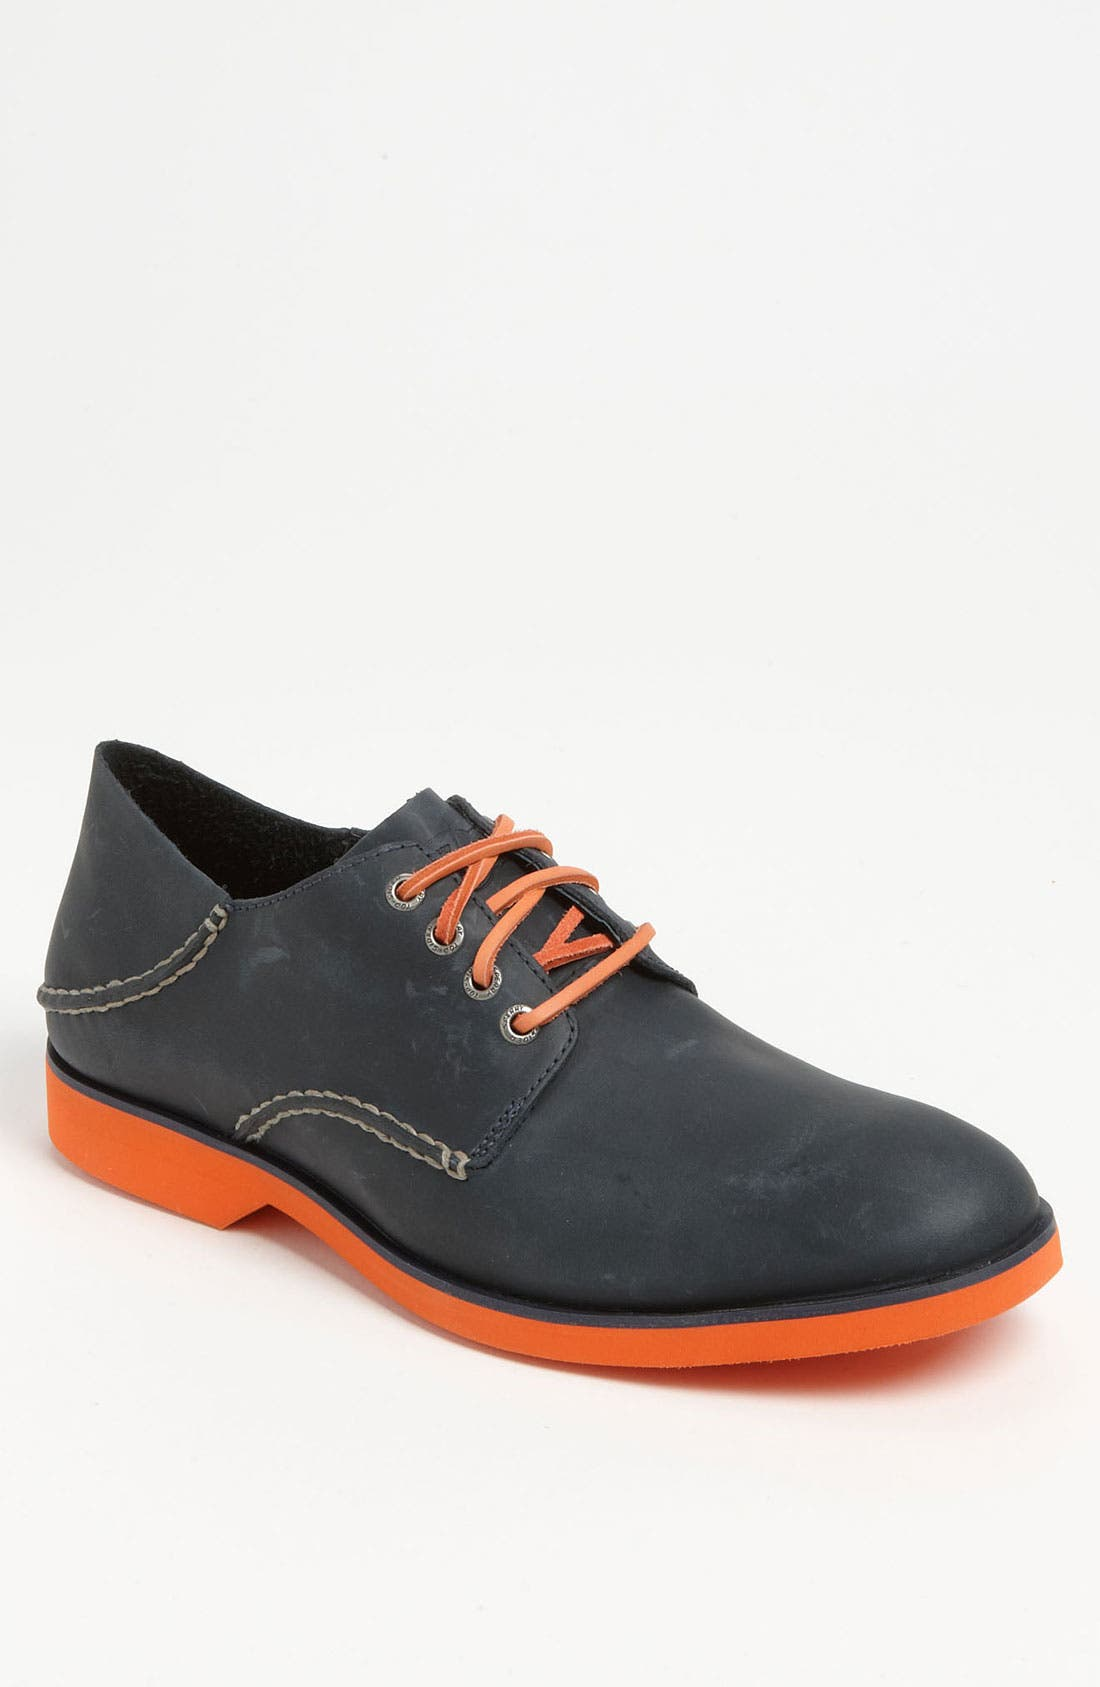 Alternate Image 1 Selected - Sperry Top-Sider® 'Boat Ox' Buck Shoe